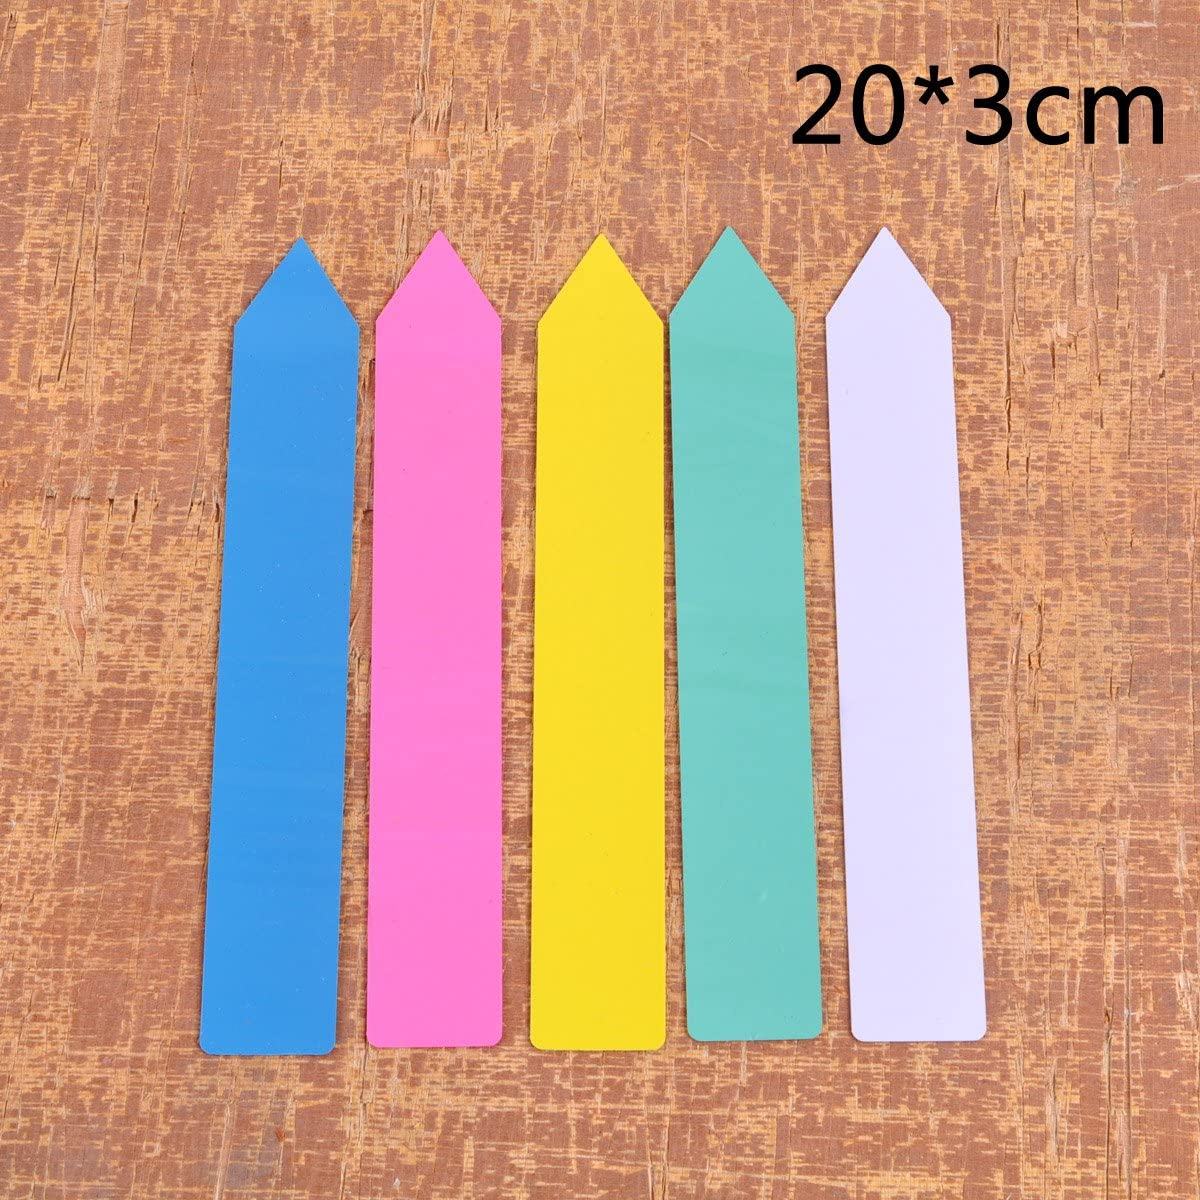 5-Color eZAKKA 500 Pieces Plant Label Plastic Garden Labels Markers Plant Name Tags 2.5x15cm Seed Nursery Garden Stake Gardening Accessories